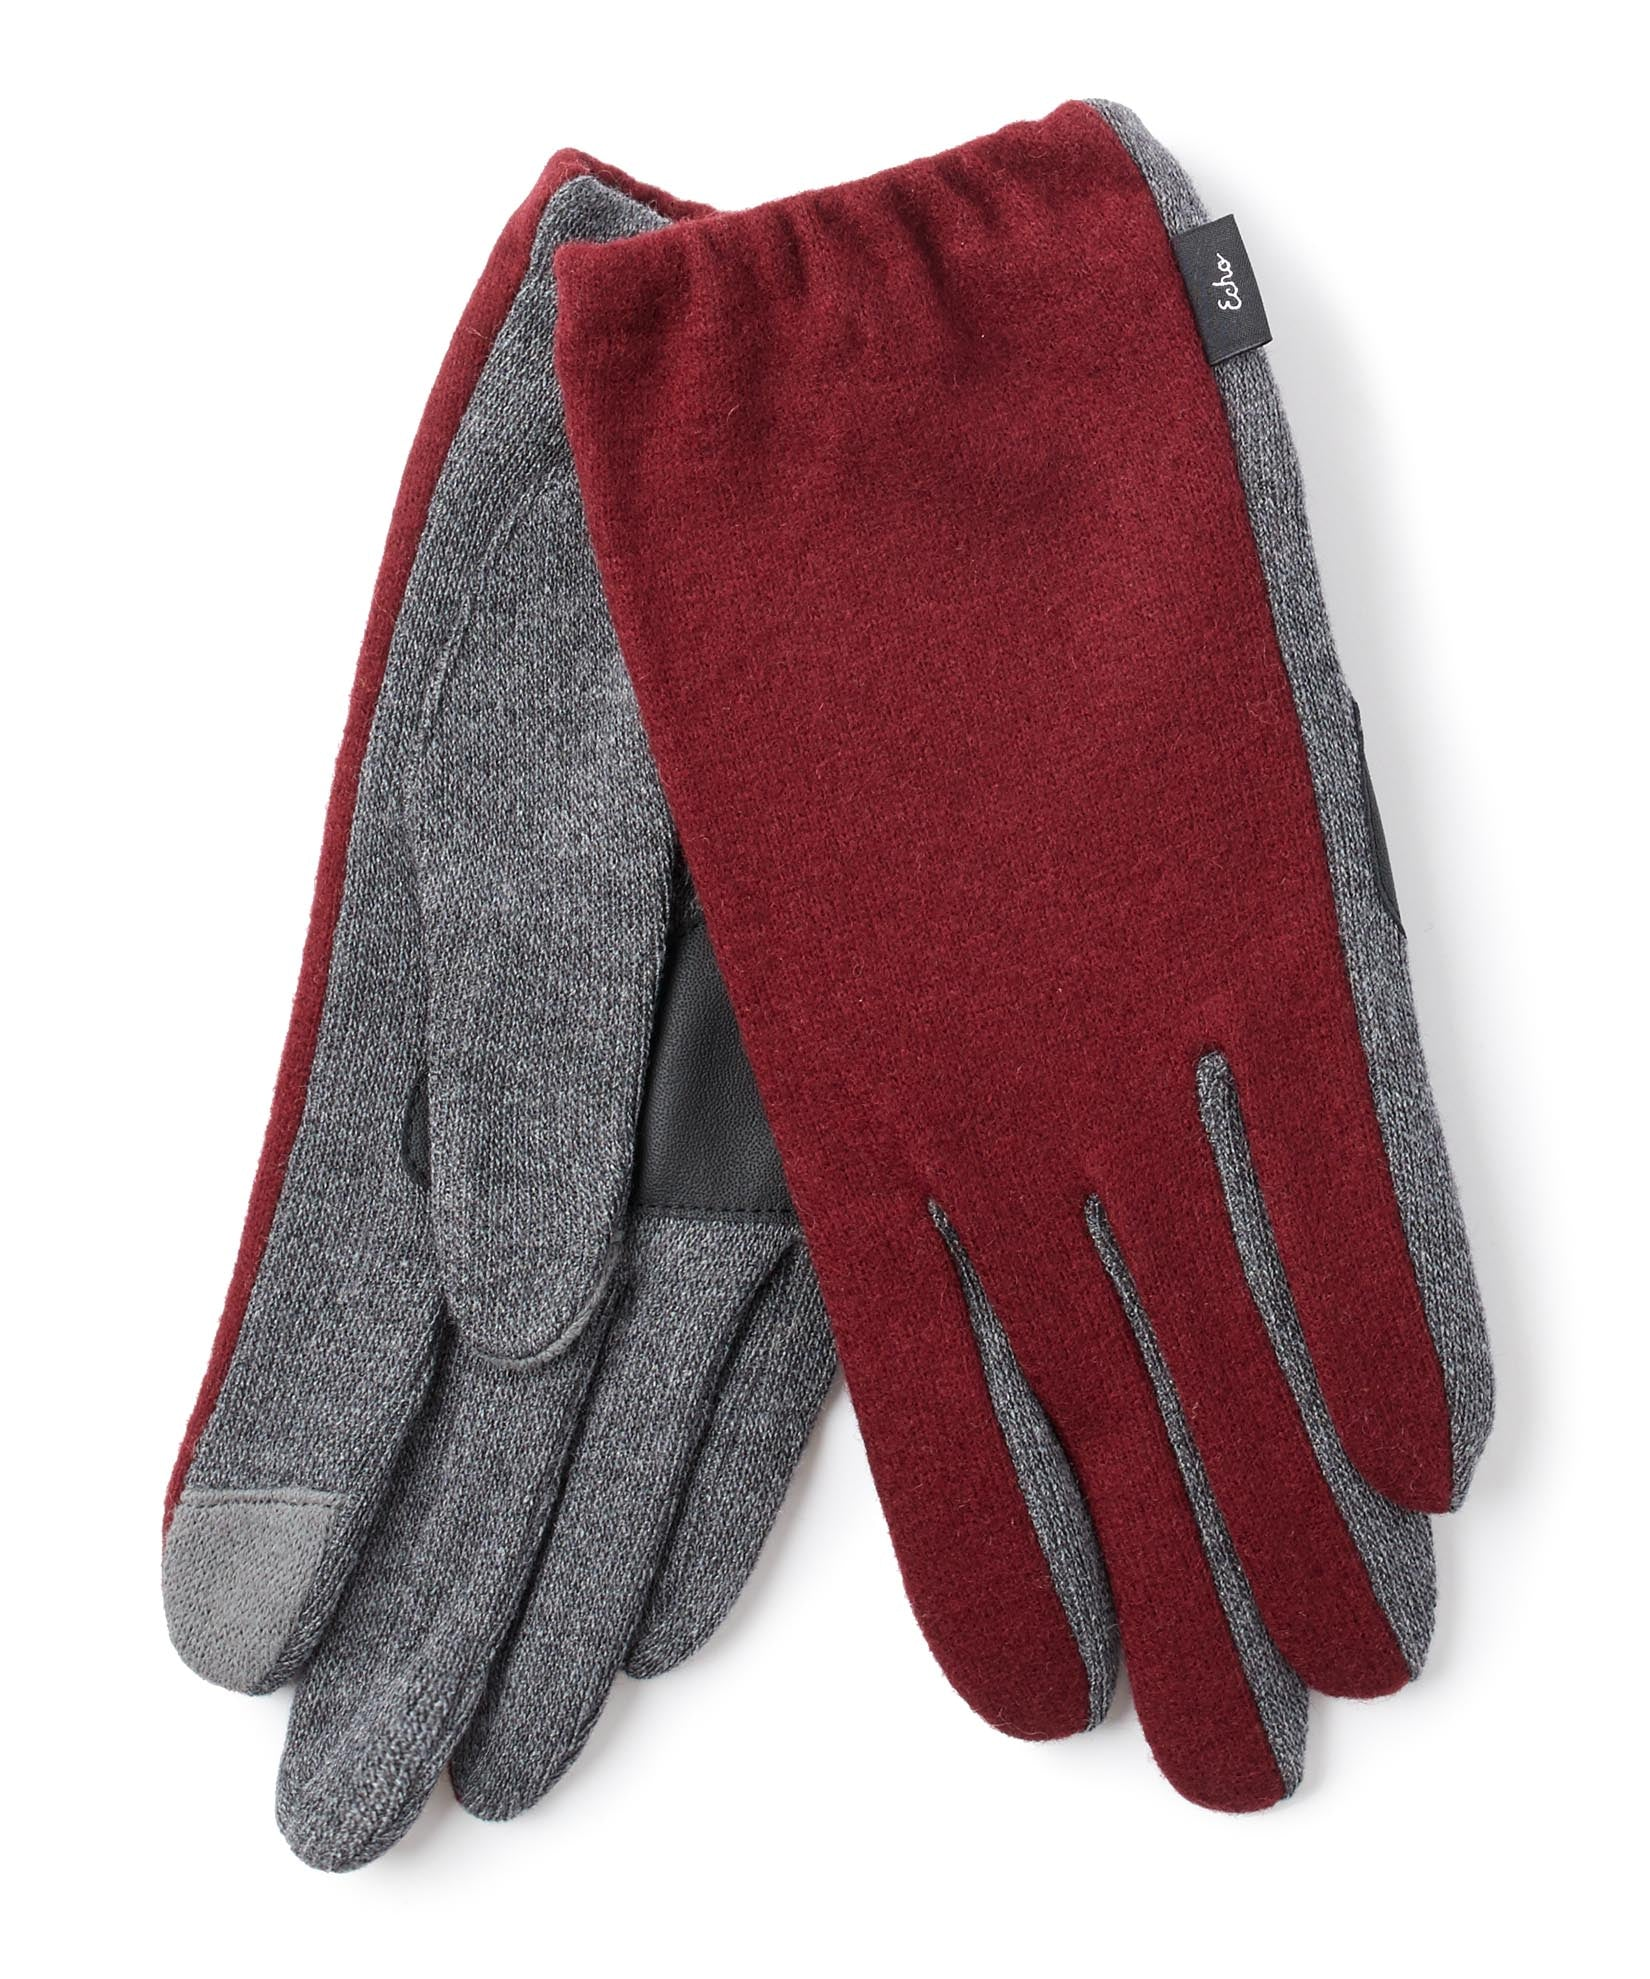 Port - Classic Commuter Glove